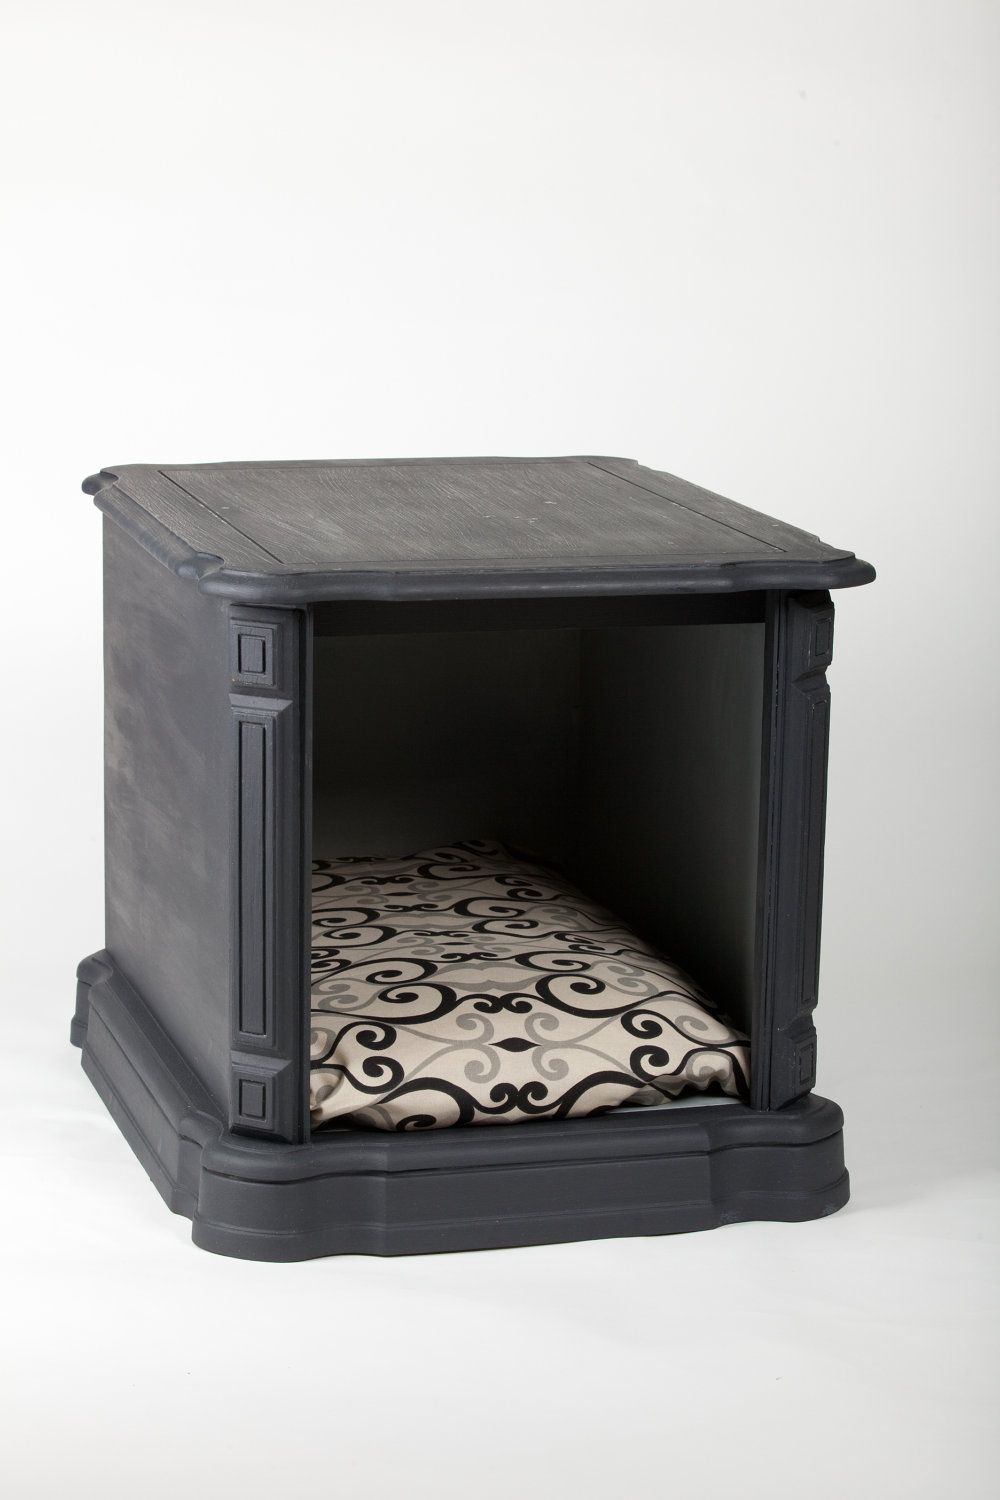 cozy pet end table nightstand products for the spoiled another doggie inspiration piece vintage turned can use top regular night stand placing next centerpieces dining room